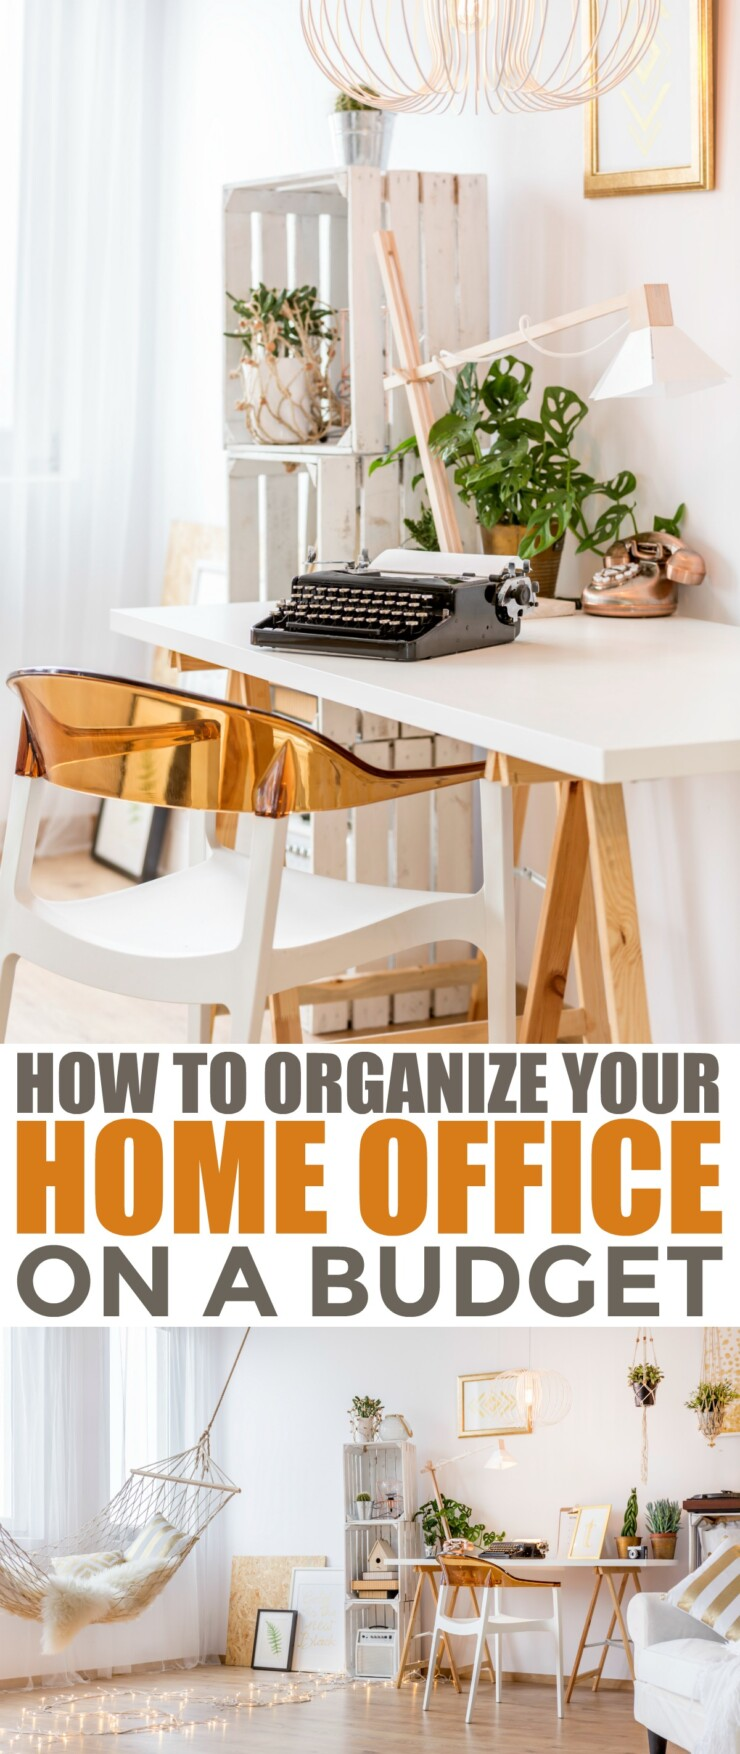 There are ways to ensure that your home office stays organized and clean without breaking the bank, you just have to be creative and invest some effort. How to Organize your home office on a budget.